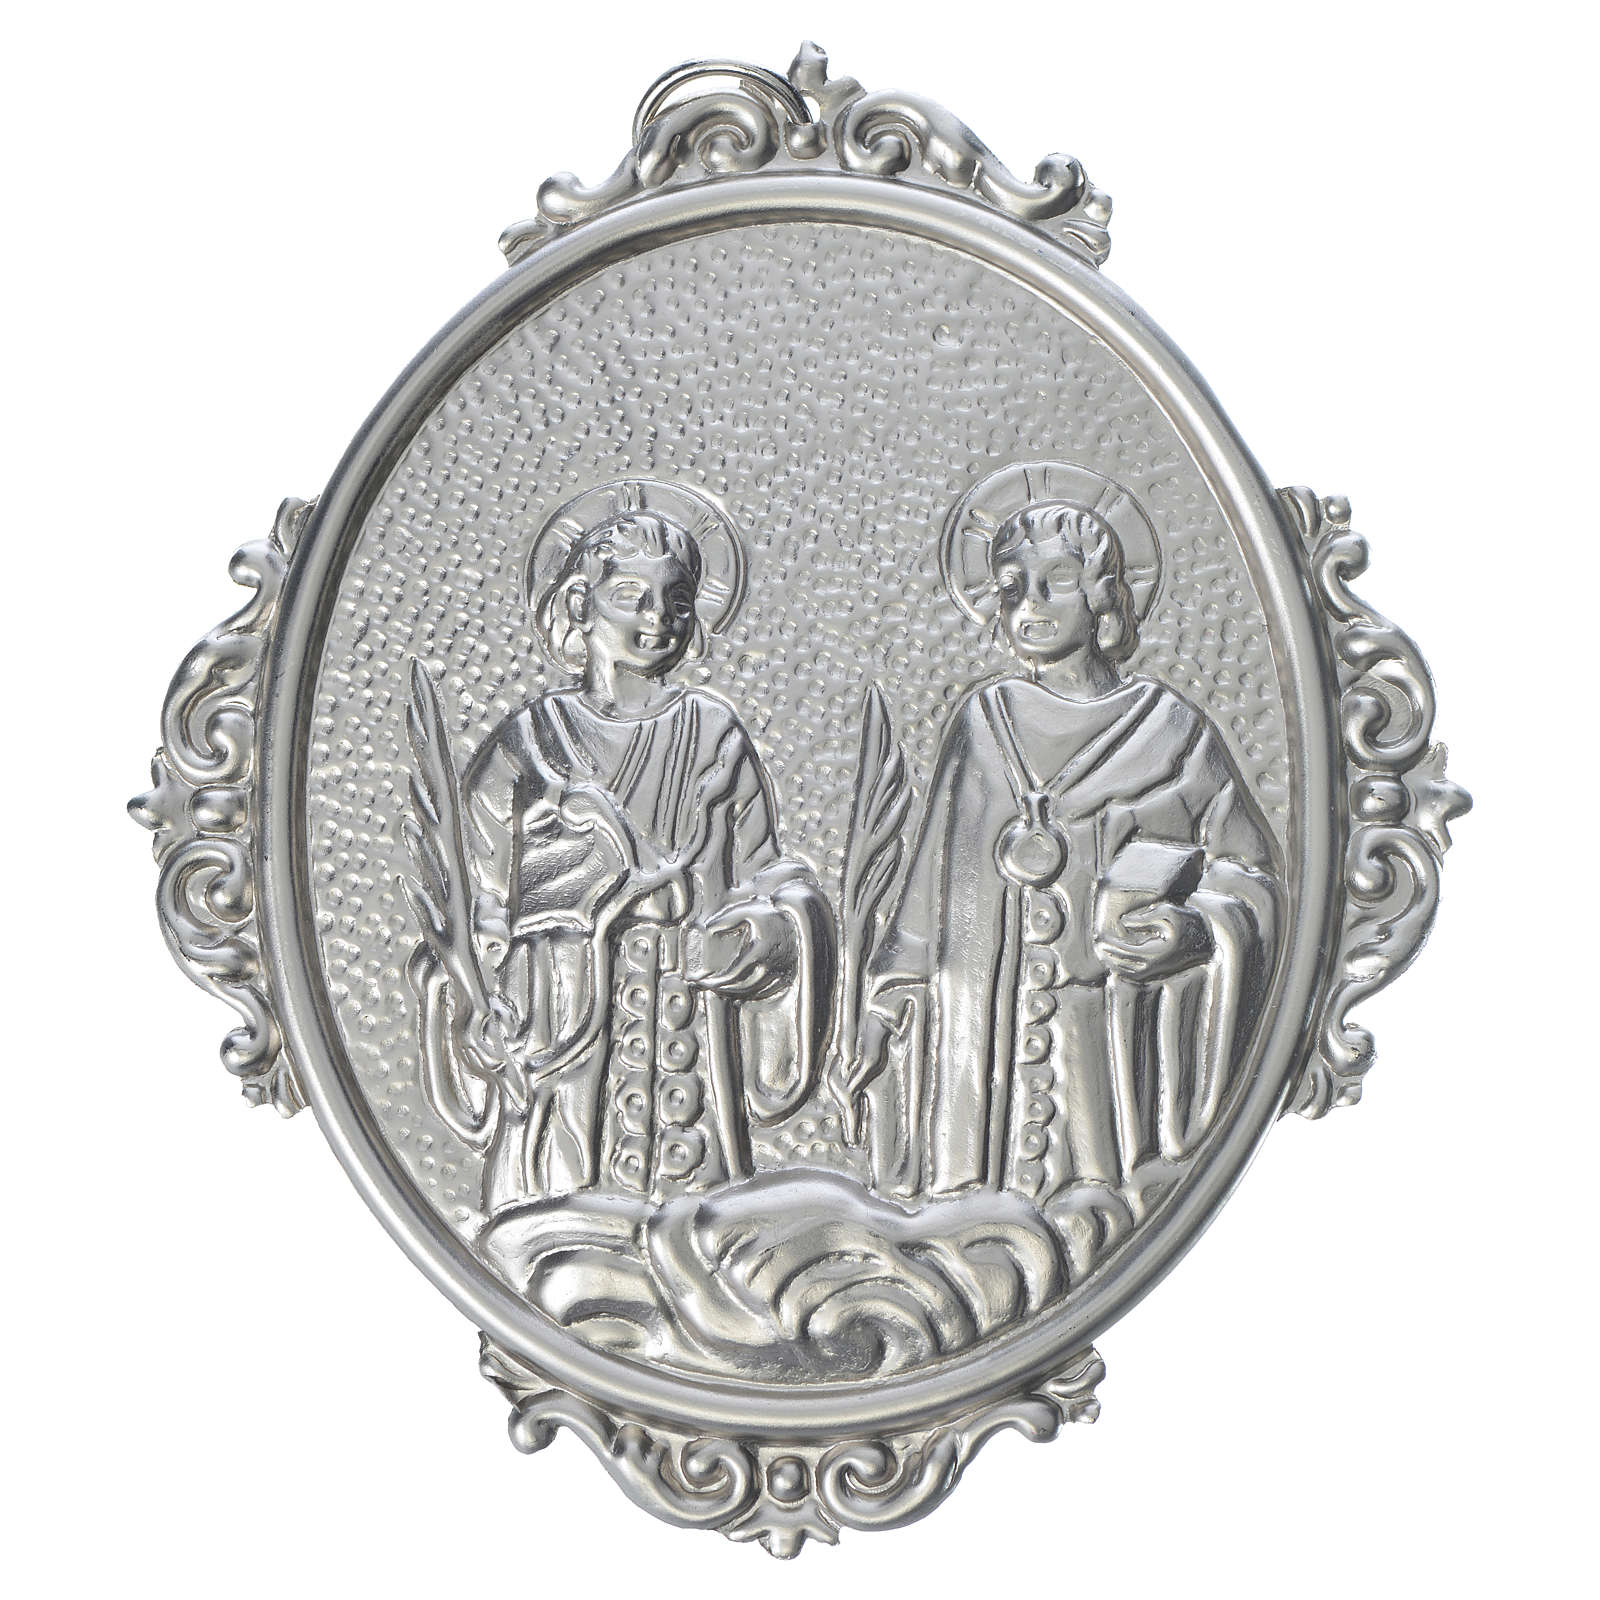 Confraternity Medal in brass, Saints Cosmas and Damian 3